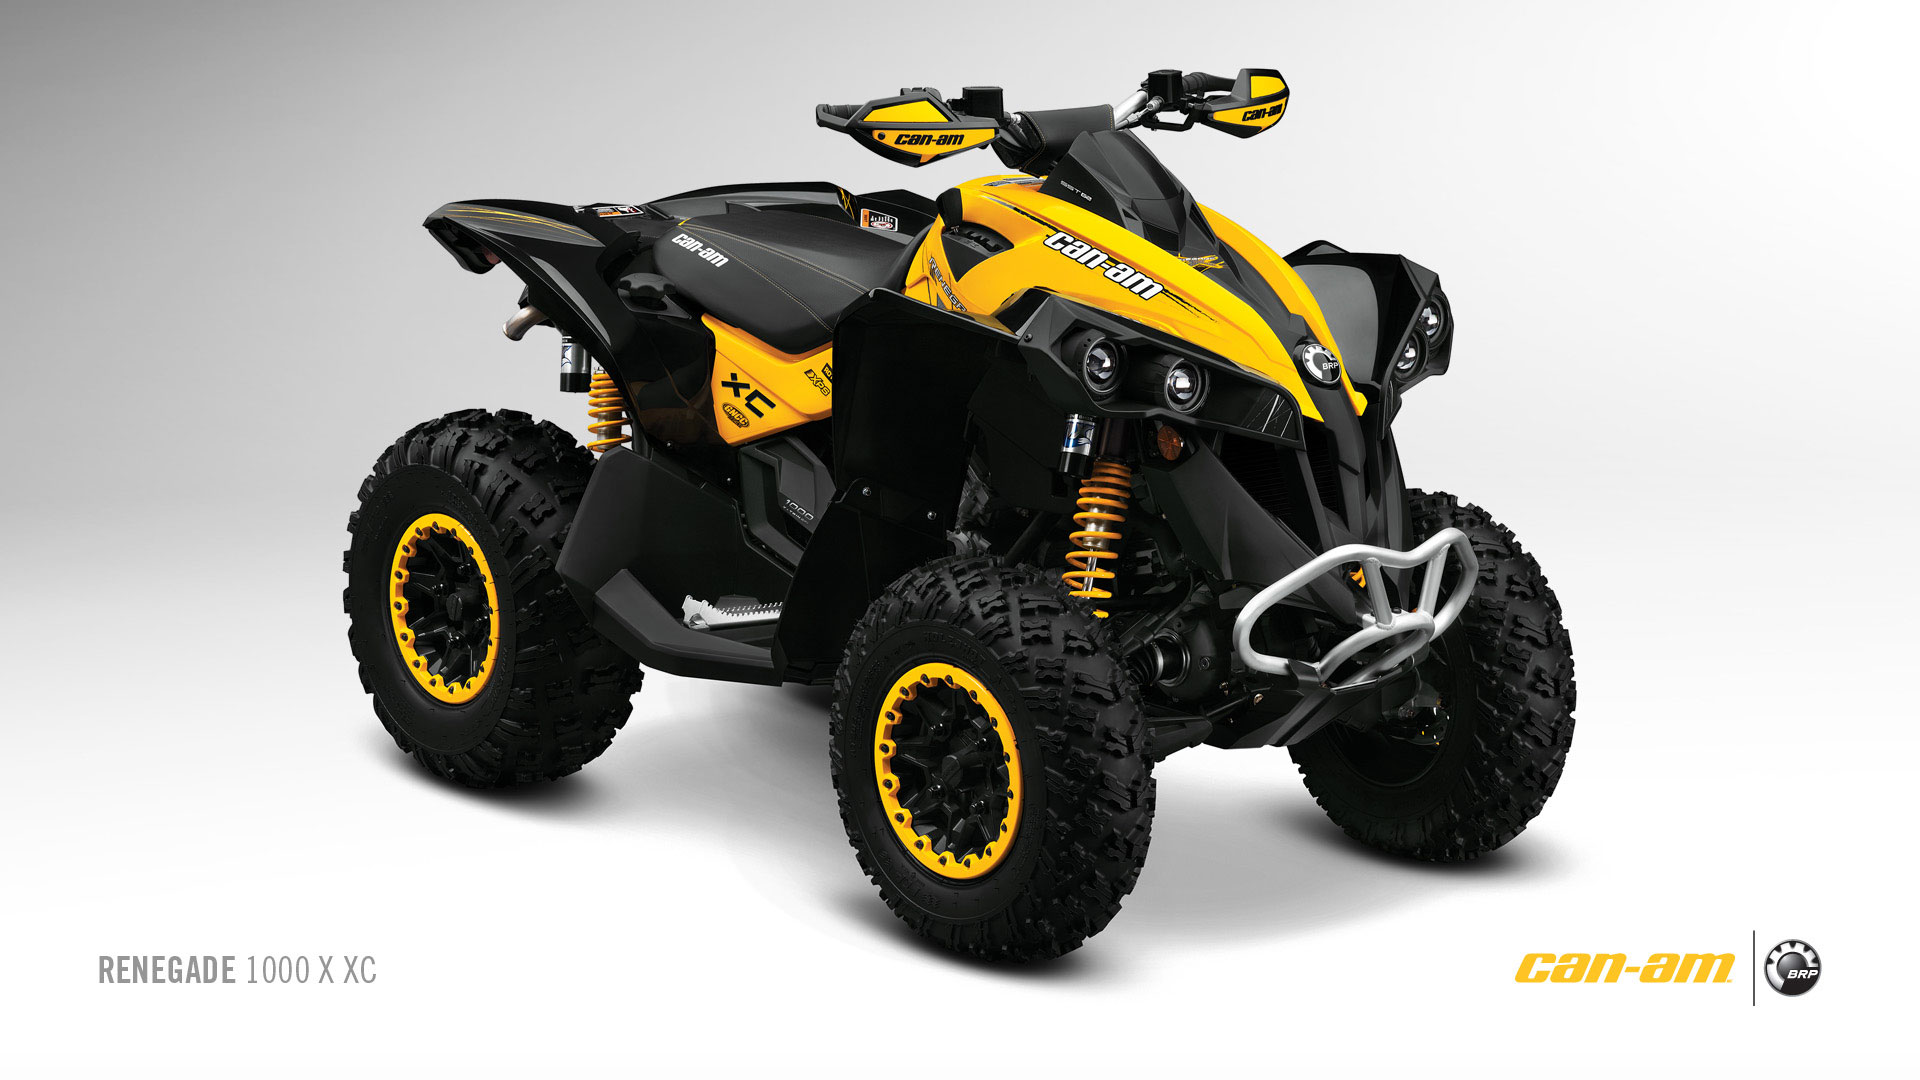 quad-atv-can-am-brp-renegade_1000x-xc-efi.jpg